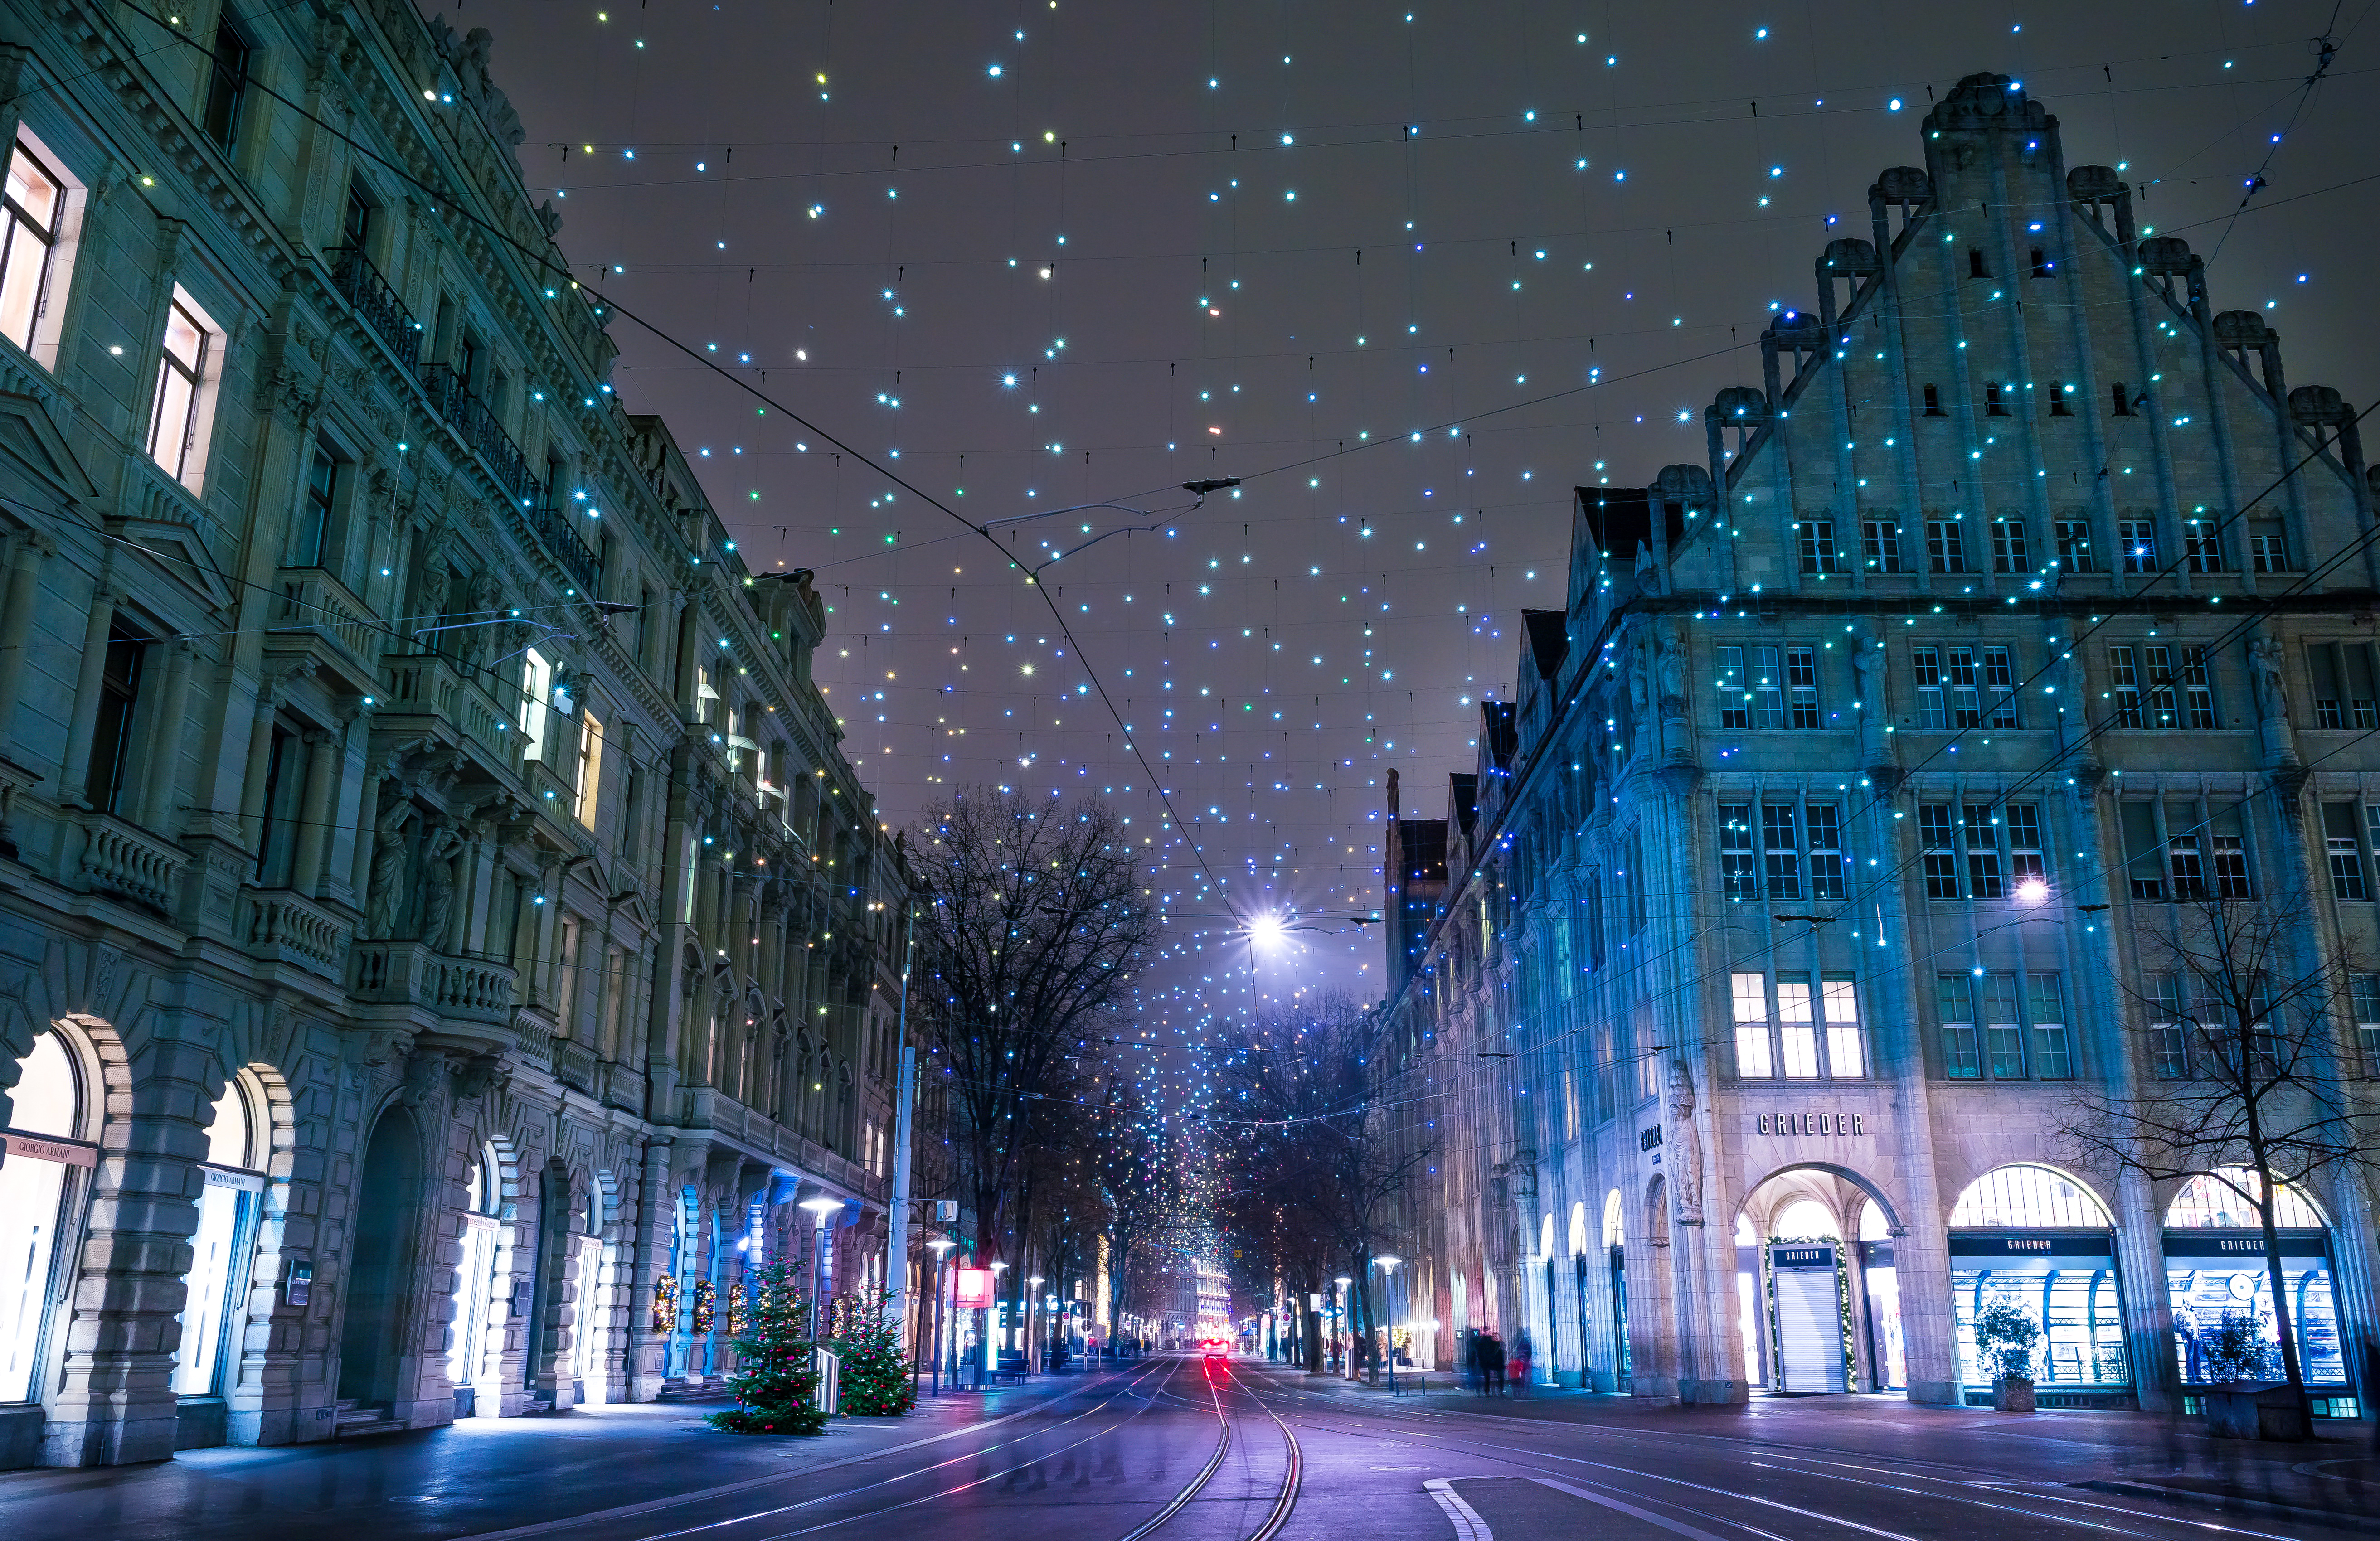 man made zurich germany christmas town snow winter wallpaper